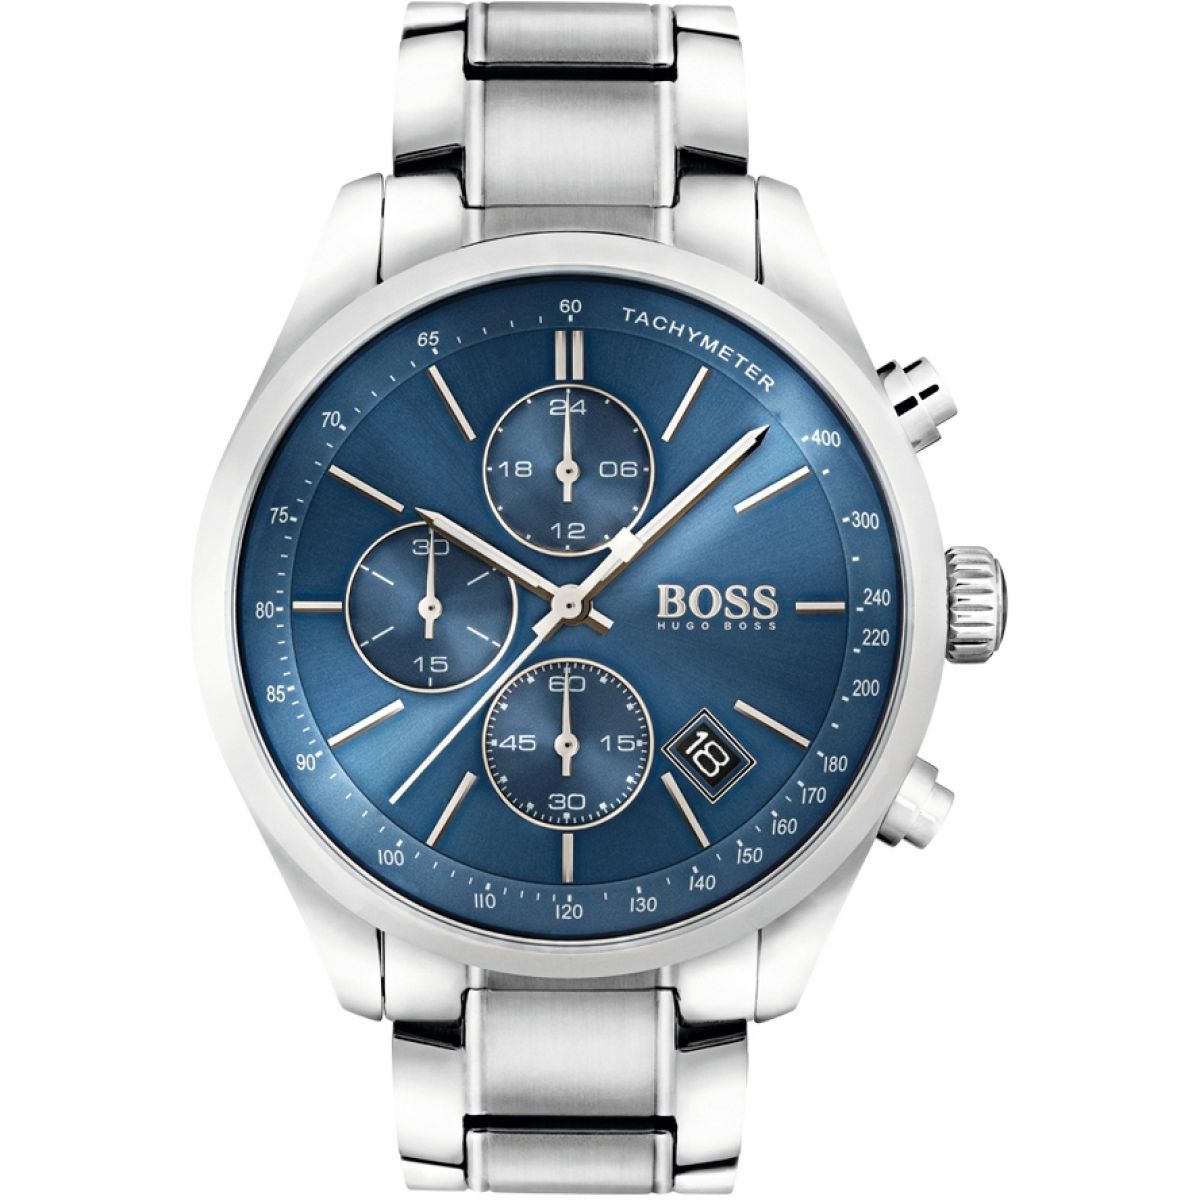 Hugo Boss 1513478 Men's Grand Prix Chronograph Watch